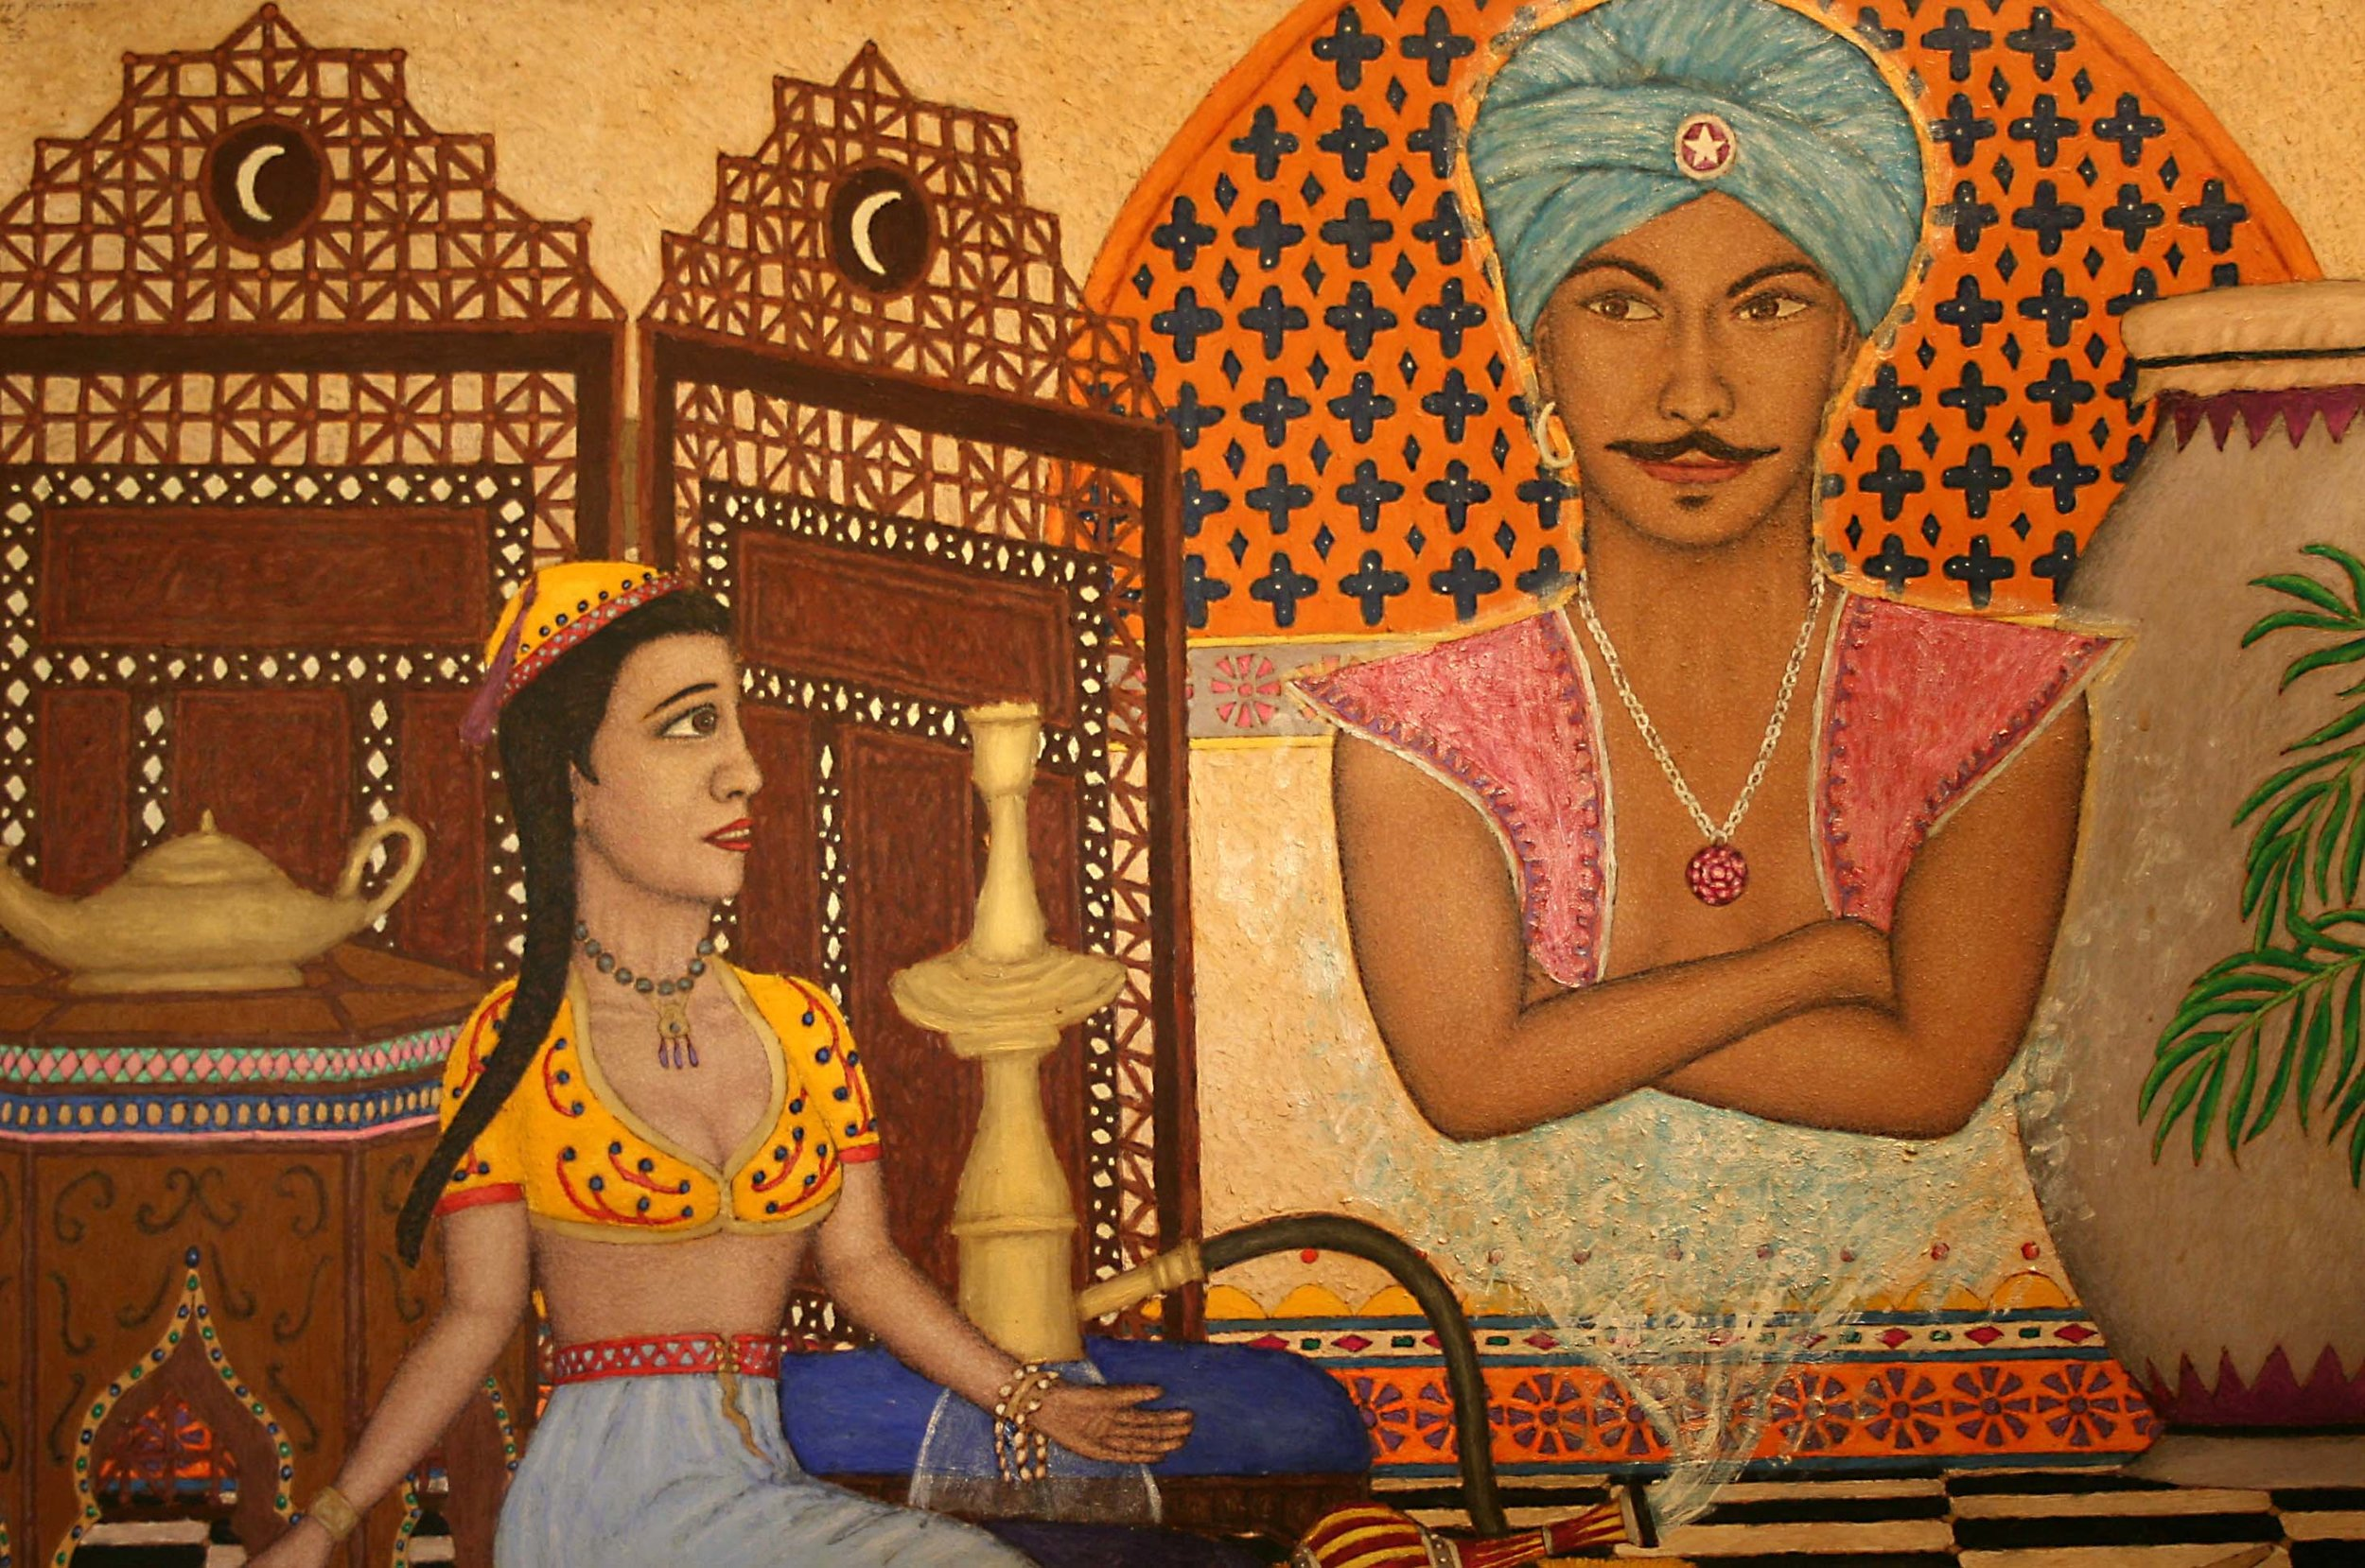 Painting of genie and woman